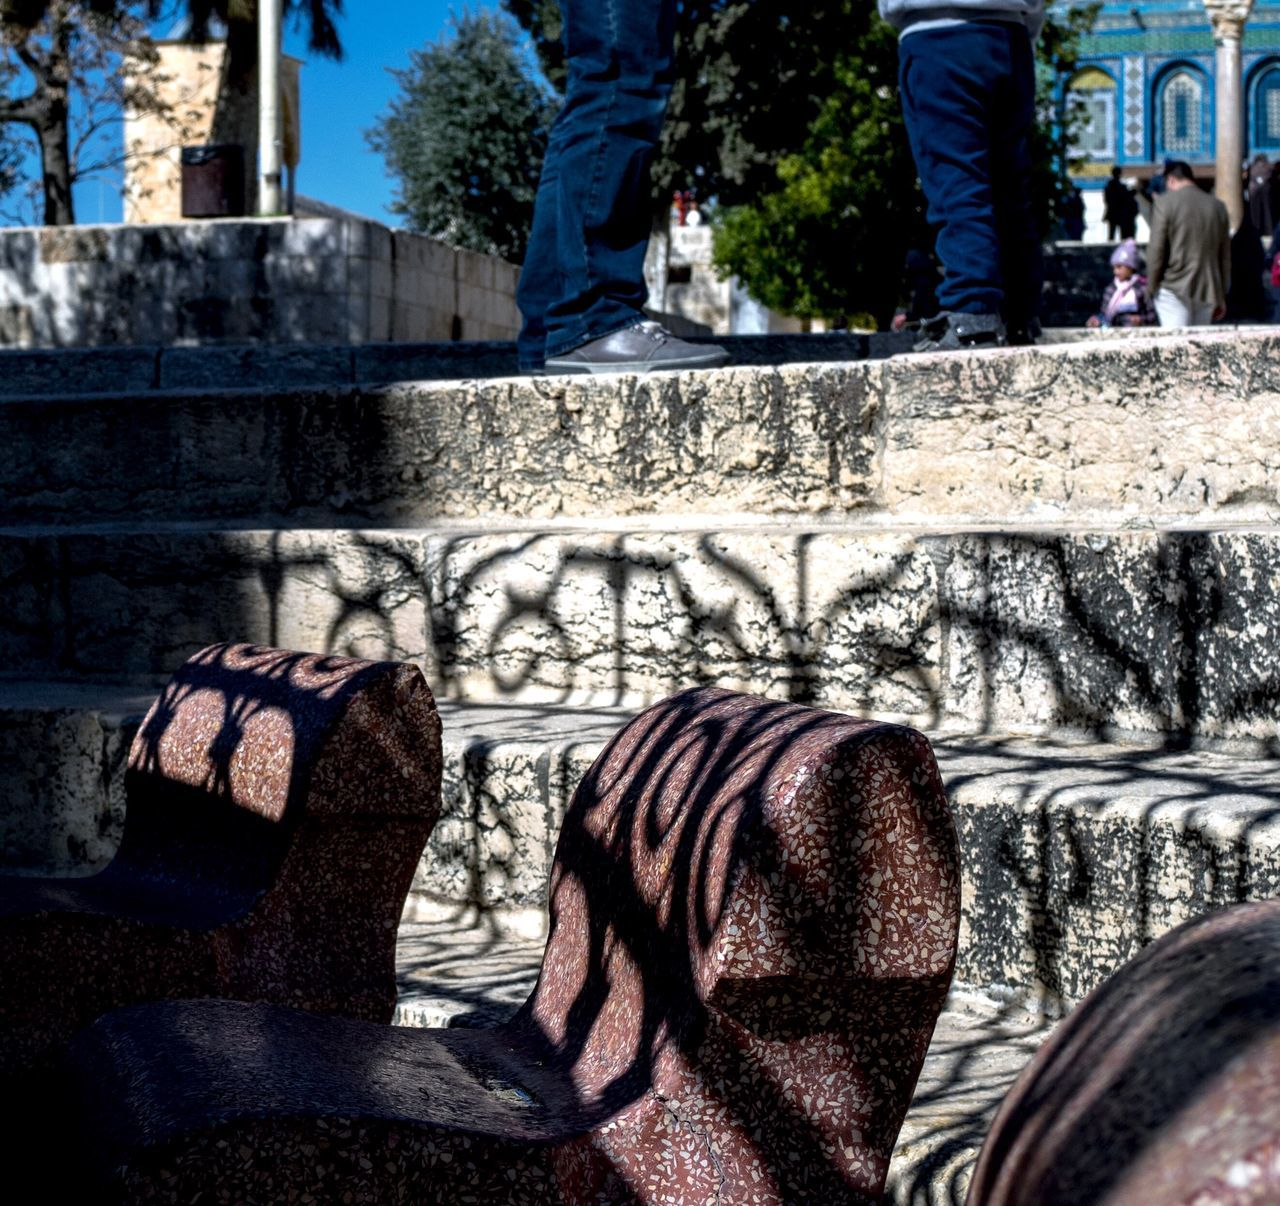 The City Light Jerusalem Israel Al-Aqsa Mosque Tempel Berg LightandshadowOutdoors Day Building Exterior Architecture Adult People Low Section Feet Fountain Ornaments Grid Holy Place Tourists Israelgram Shadows Beautiful Shadow Chasing Light Afterlight Light